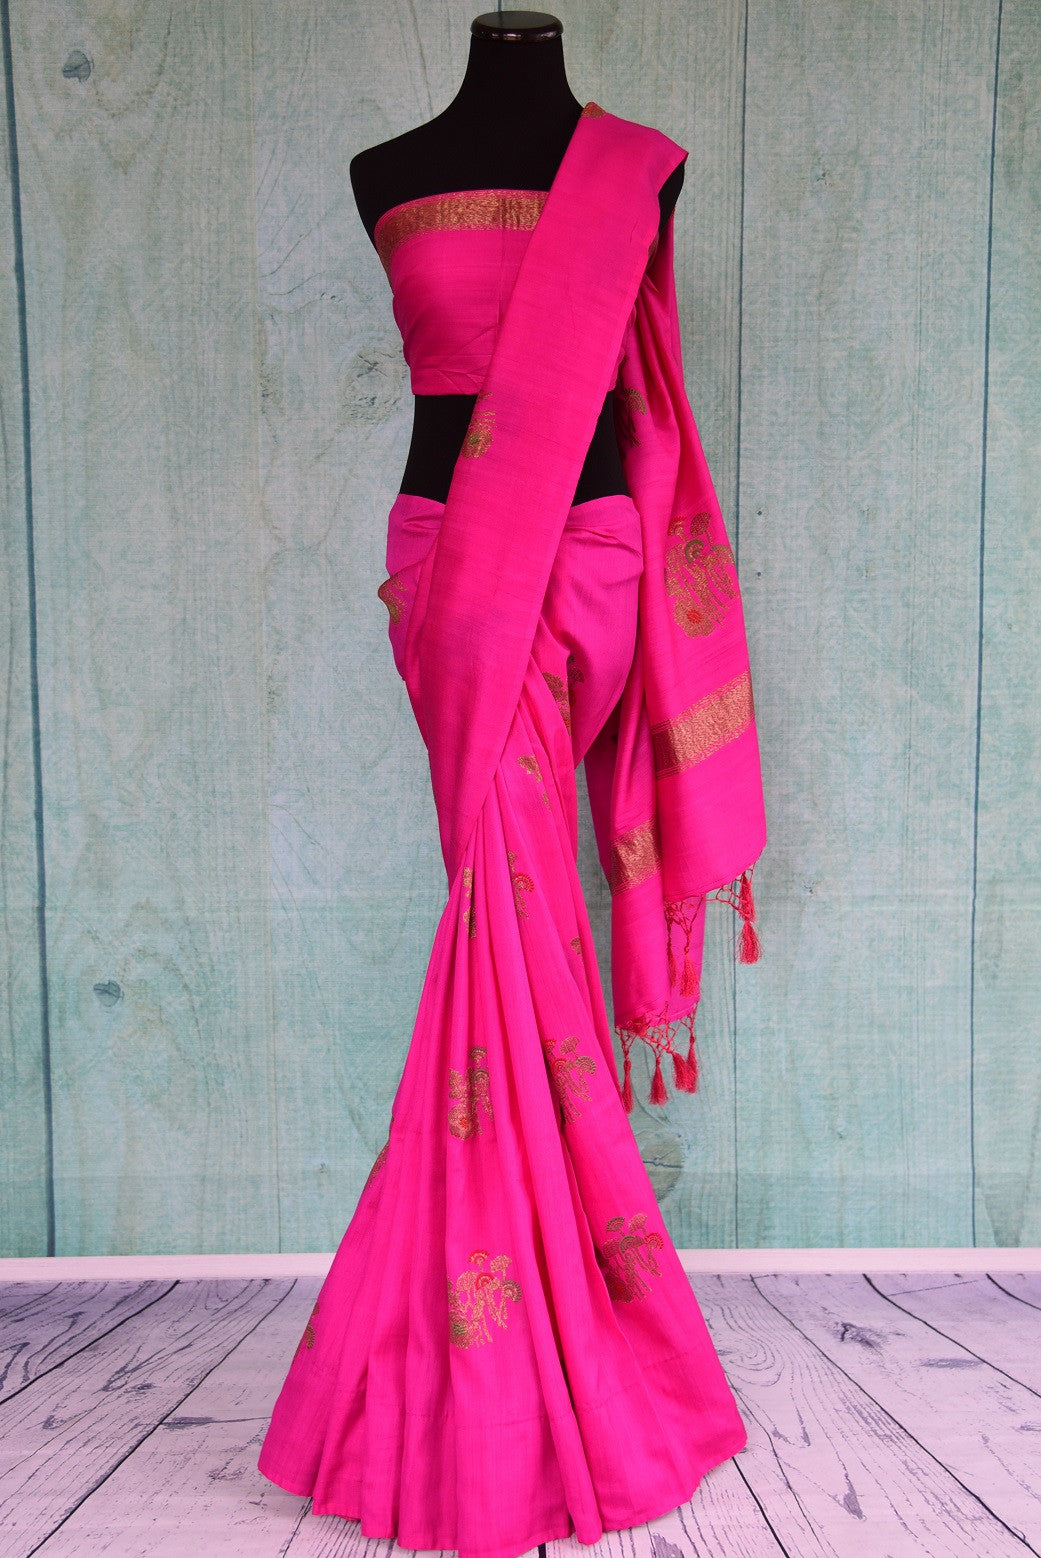 90D440 Rani pink saree with traditional golden motifs, available at Pure Elegance, our Indian wear store in USA. The traditional tussar georgette Banarasi saree is ideal for Indian weddings functions.